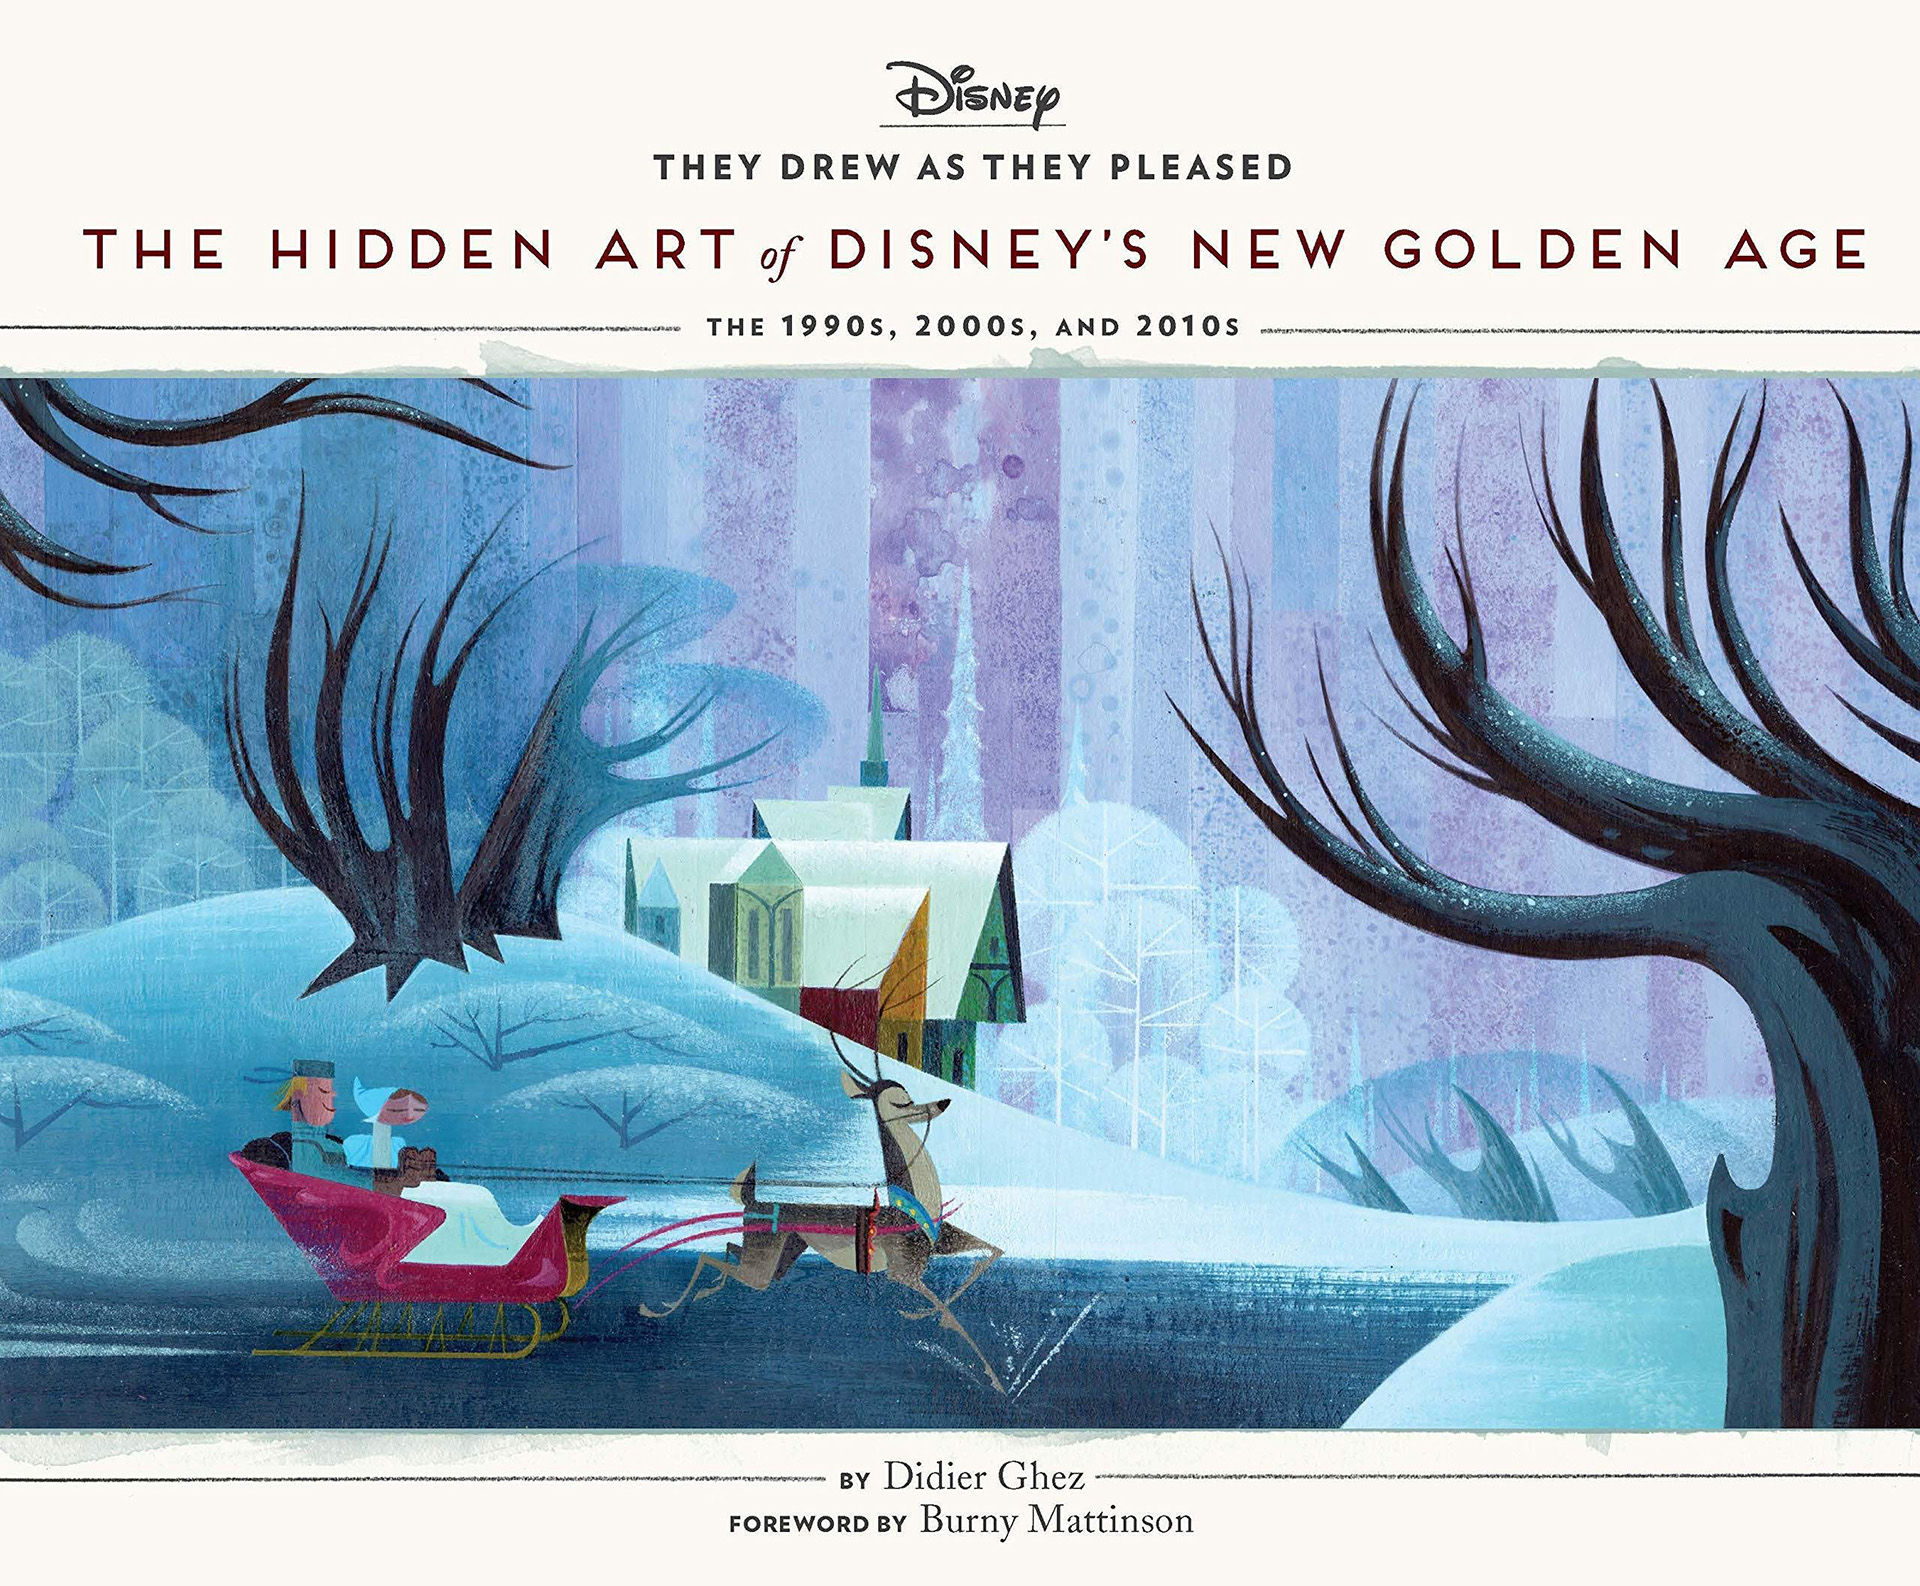 They Drew as he Pleased The Hidden Art of Disney's New Golden Age The 1990s to 2020